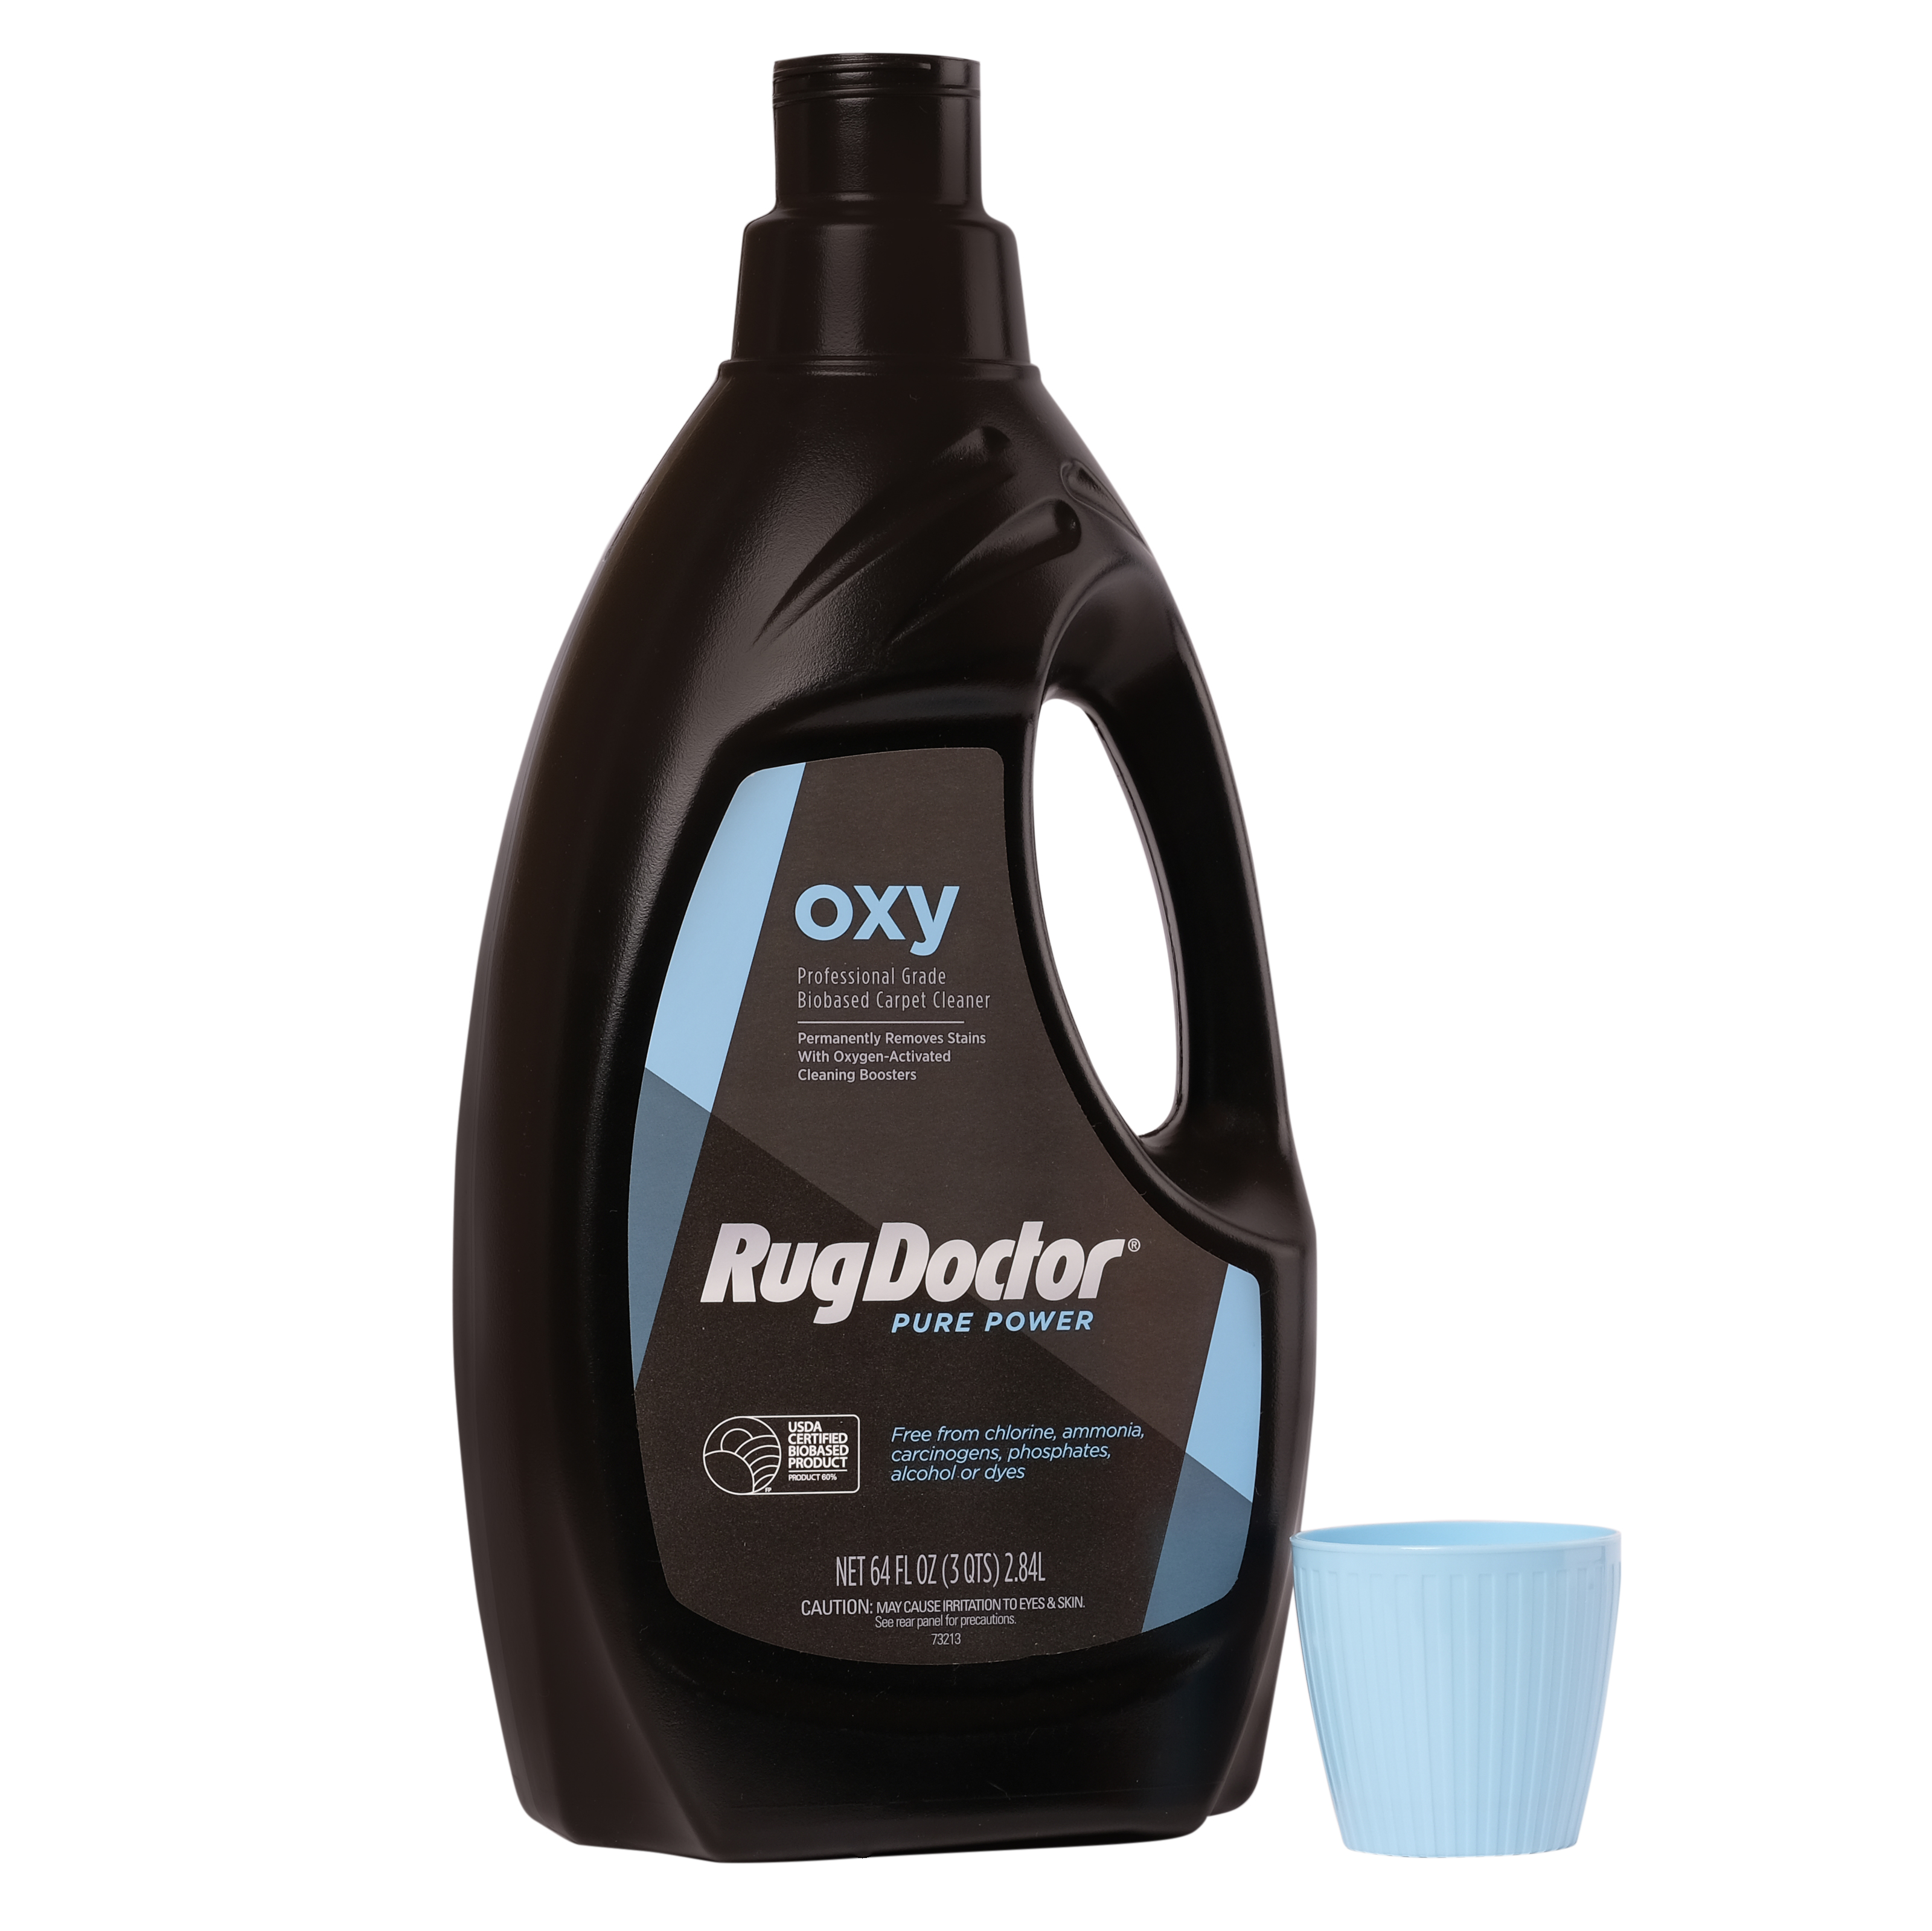 Rug Doctor Pure Power with Oxy, Eco-Friendly Biobased Carpet Cleaner; Powerful, Mindfully Blended to Remove Dirt and Tough Stains Without Harsh Chemicals, 64 oz.